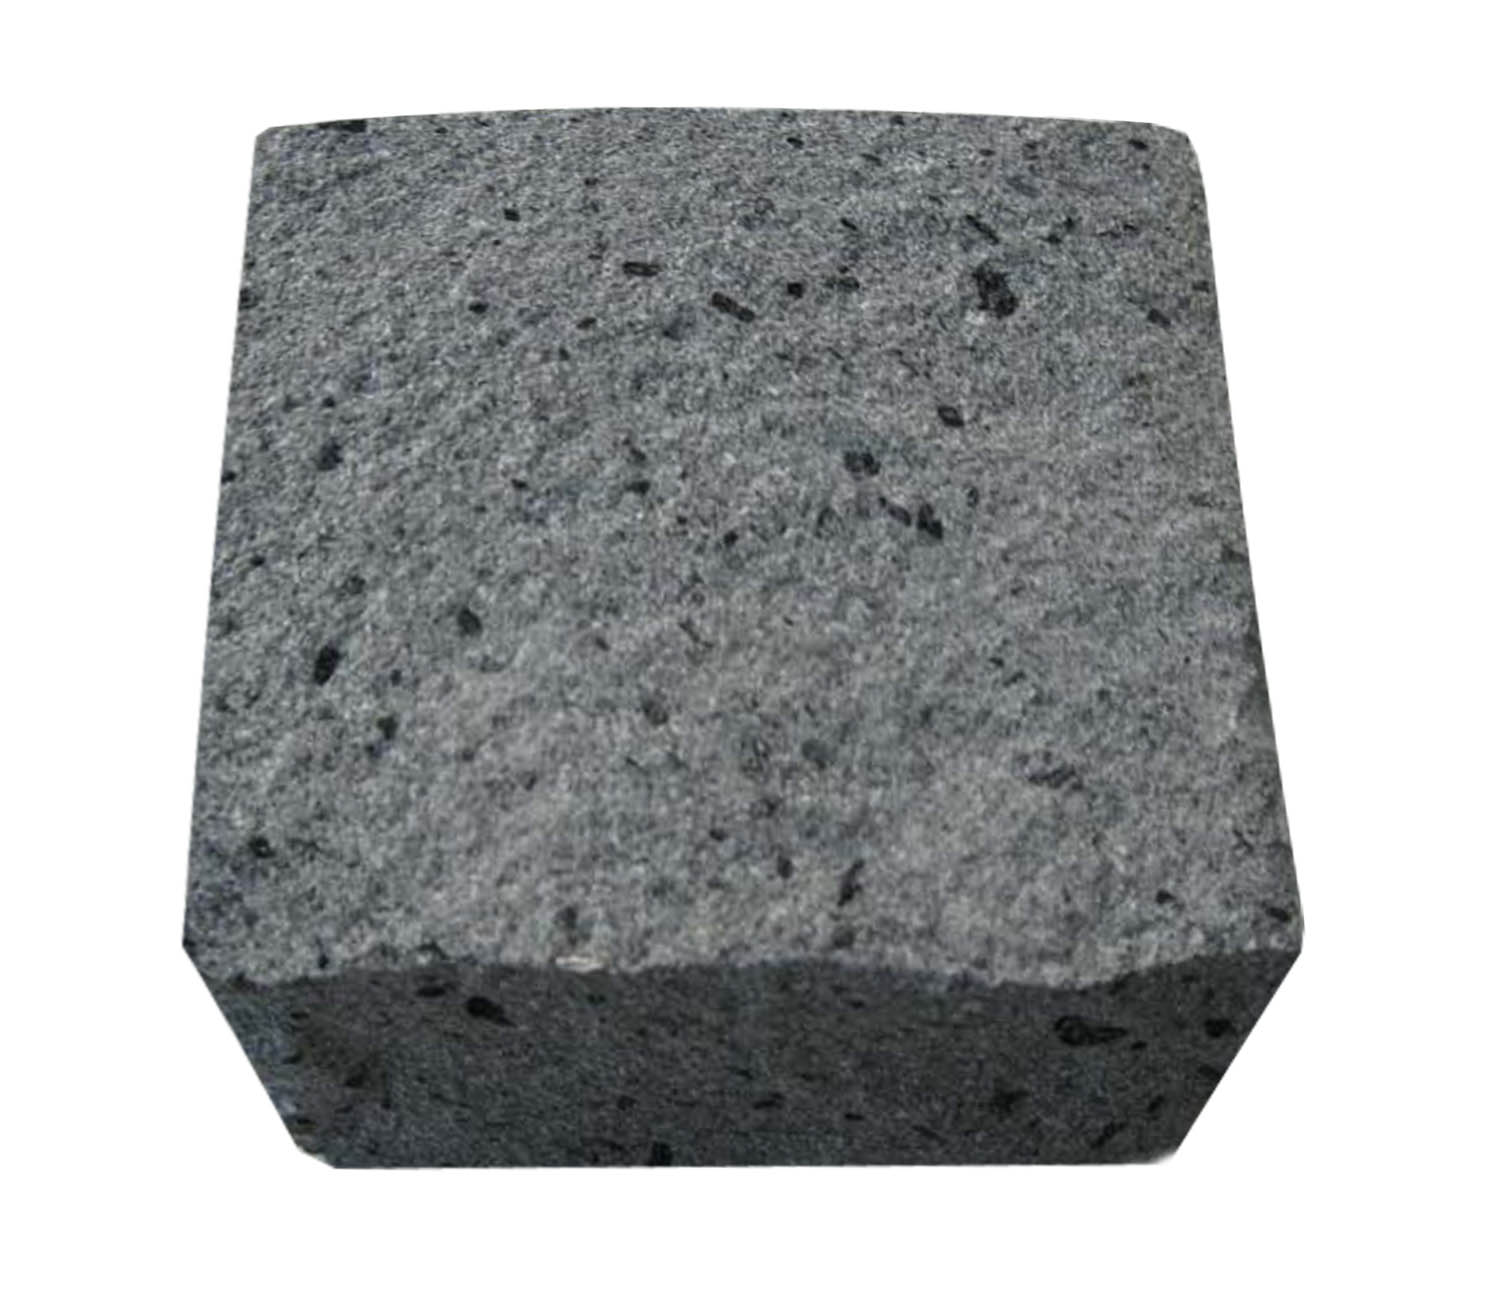 Indonesia Grey Basalt Cobblestone Basalt Paving Stone